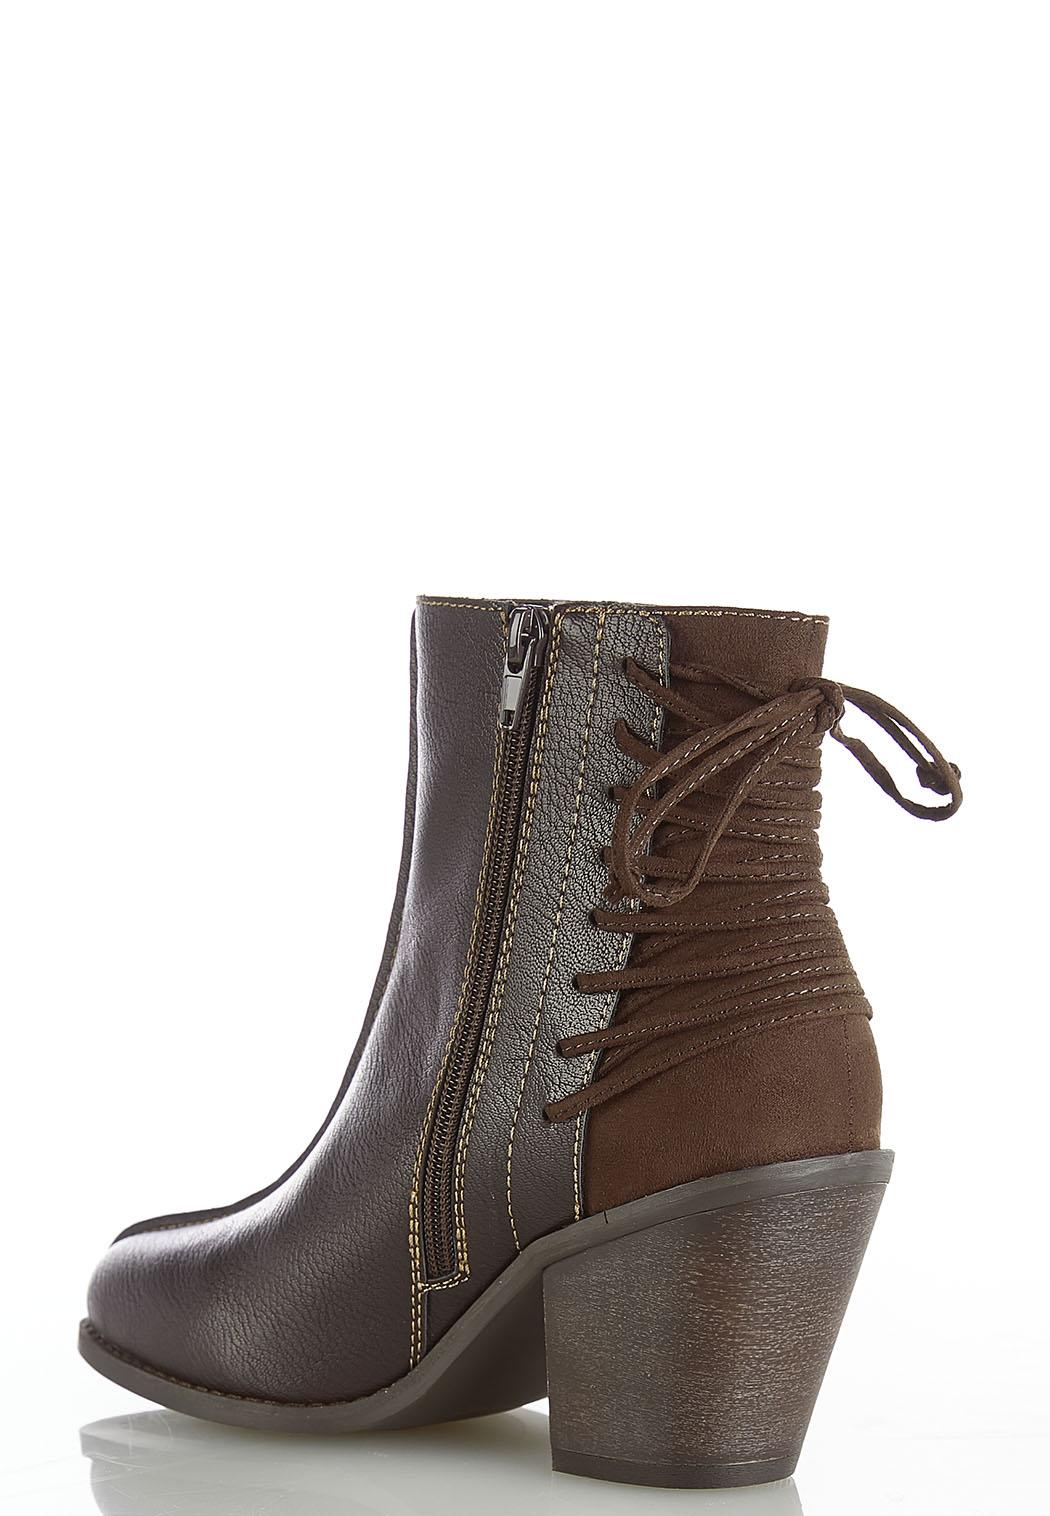 Back Lace Up Boots (Item #44415414)